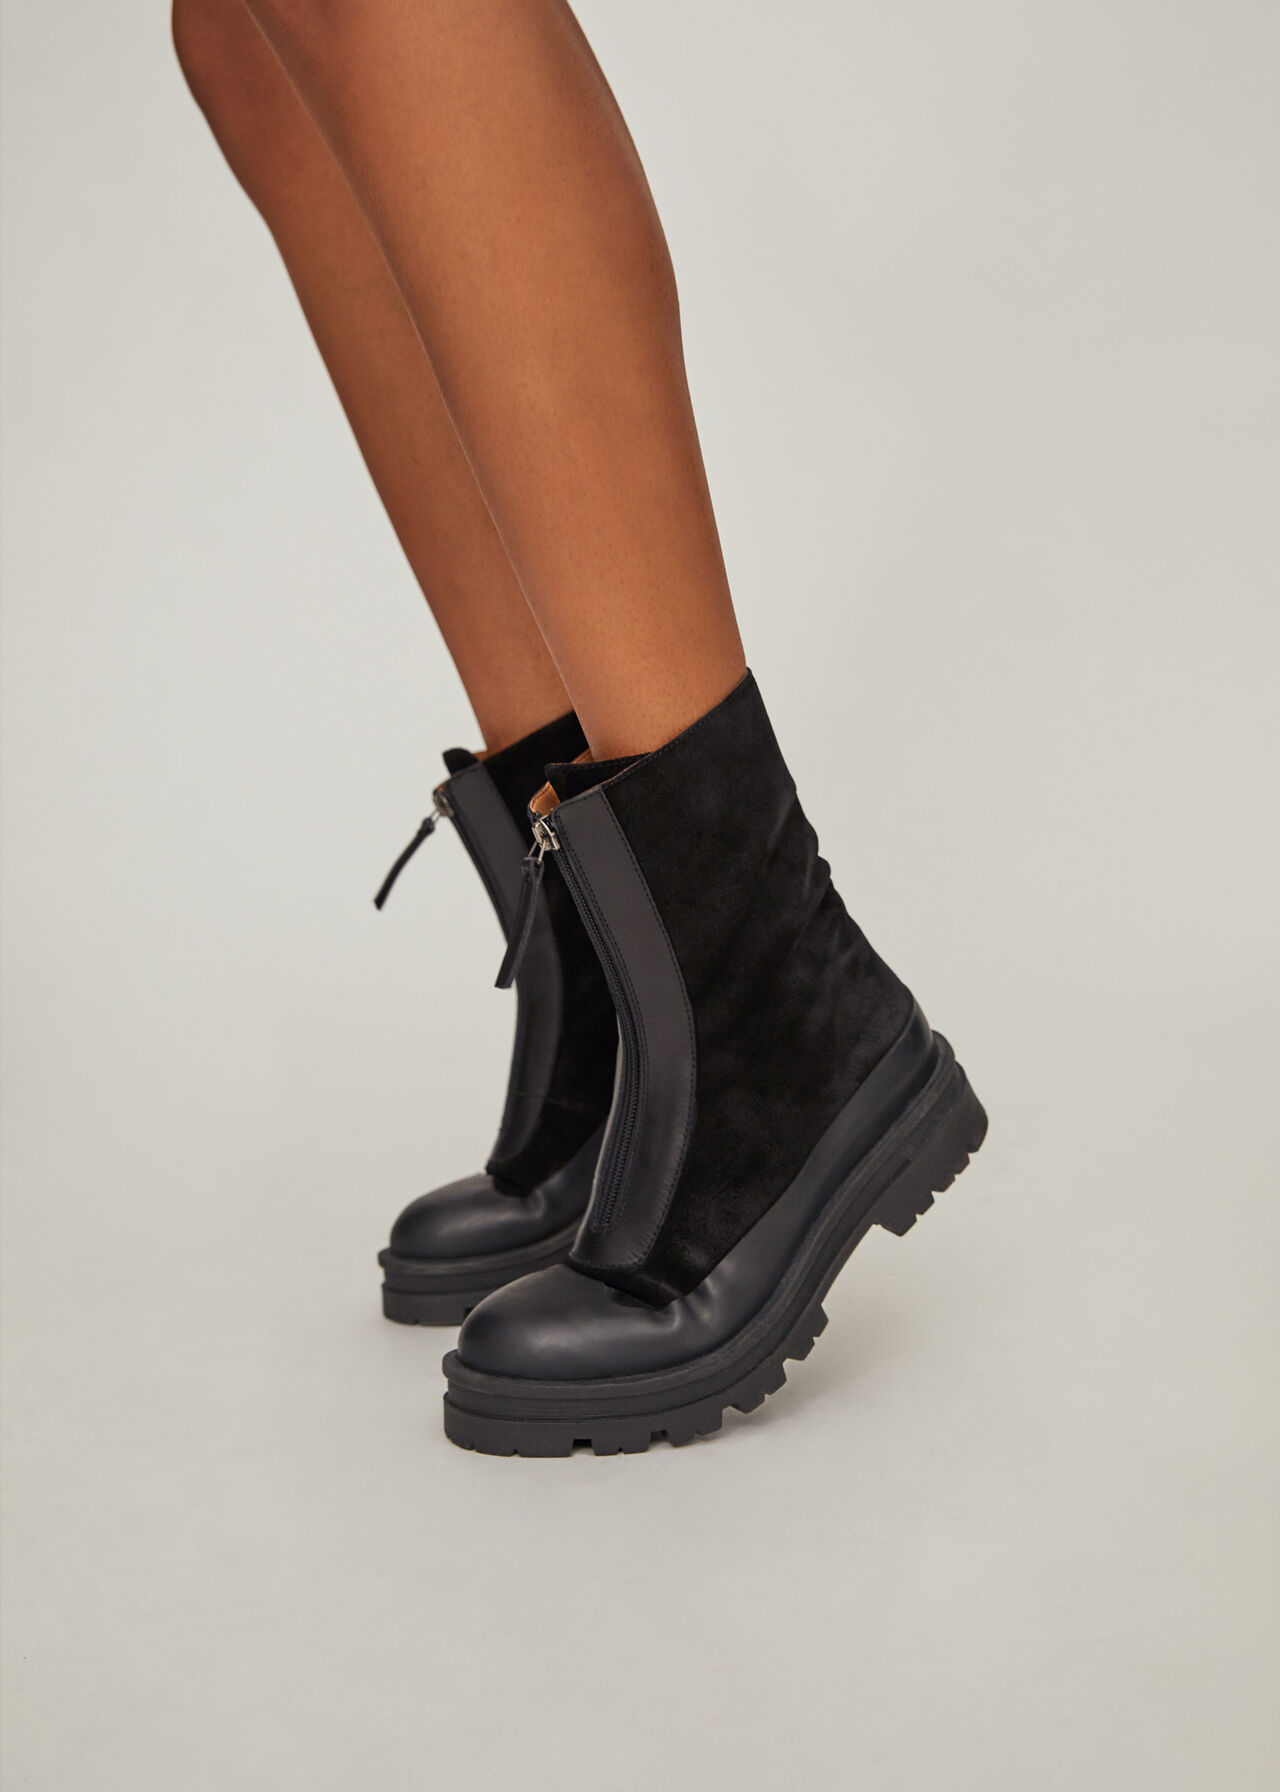 Barkley Zip Front Boot